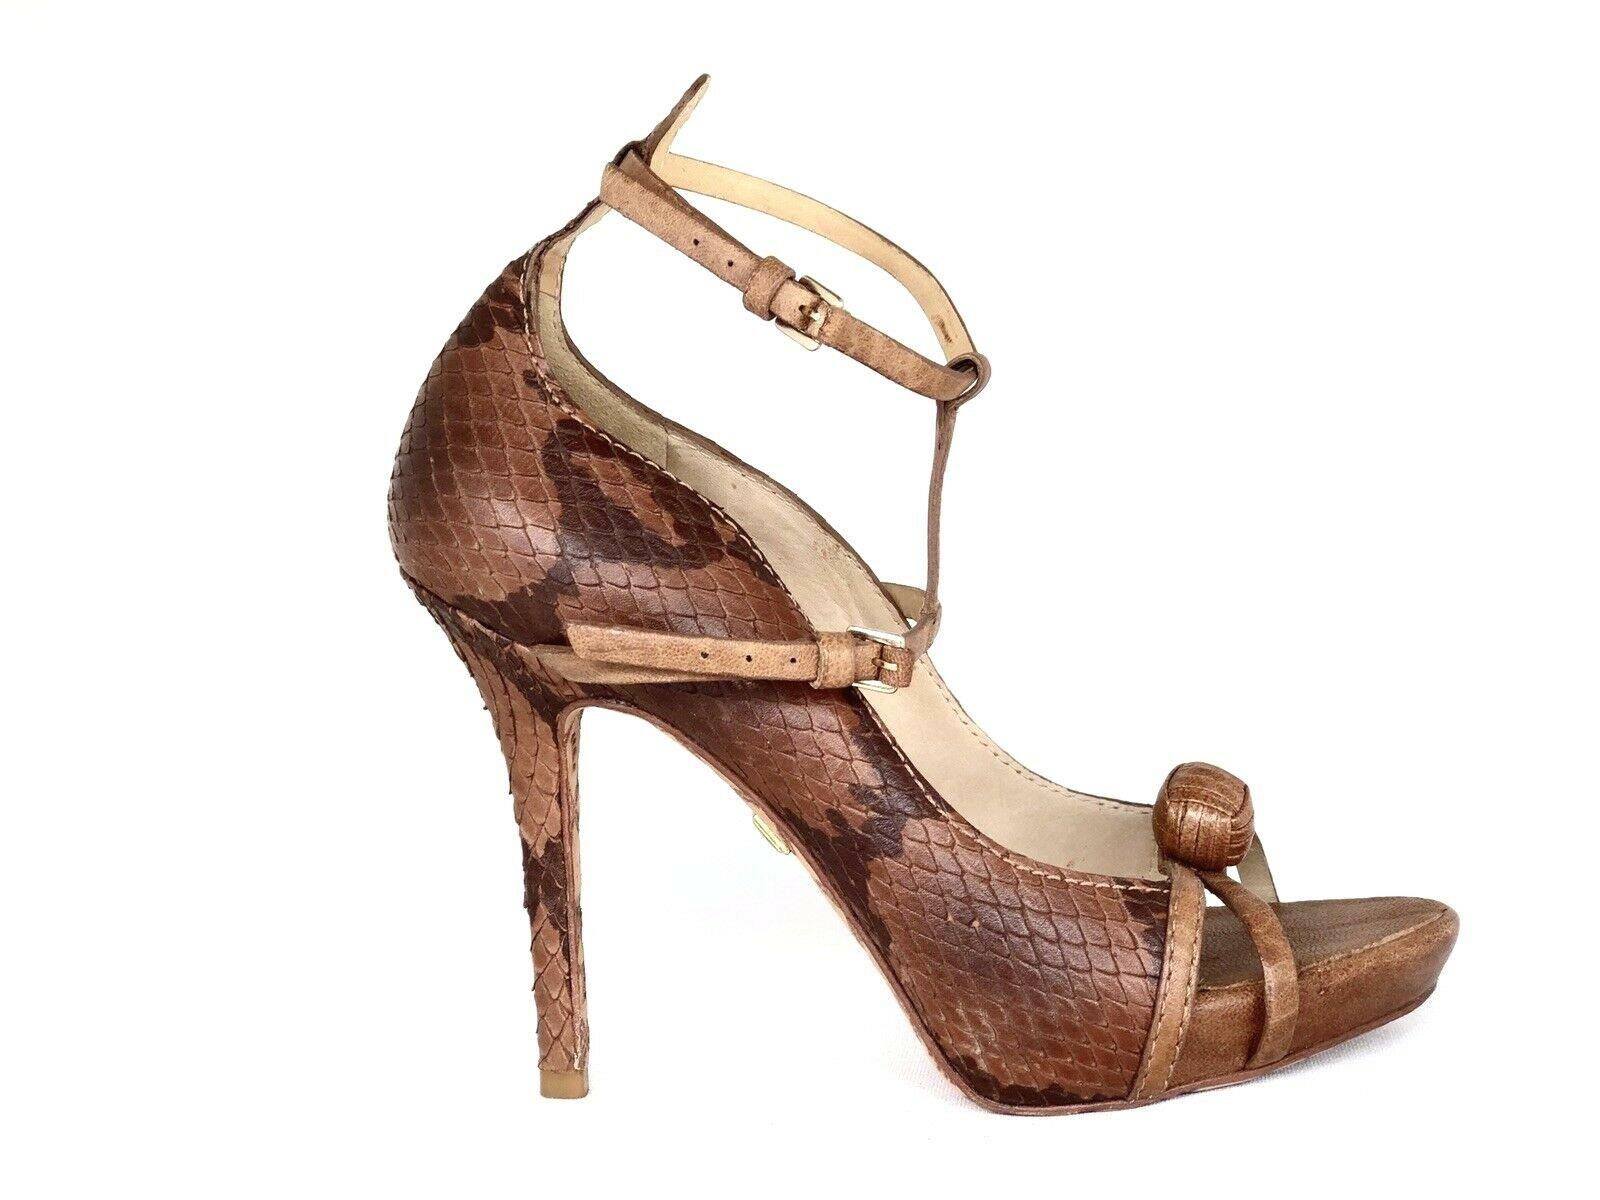 L.A.M.B Brown Piton  Snake Leather Ankle Strap Pump Designer Heel shoes 7 M